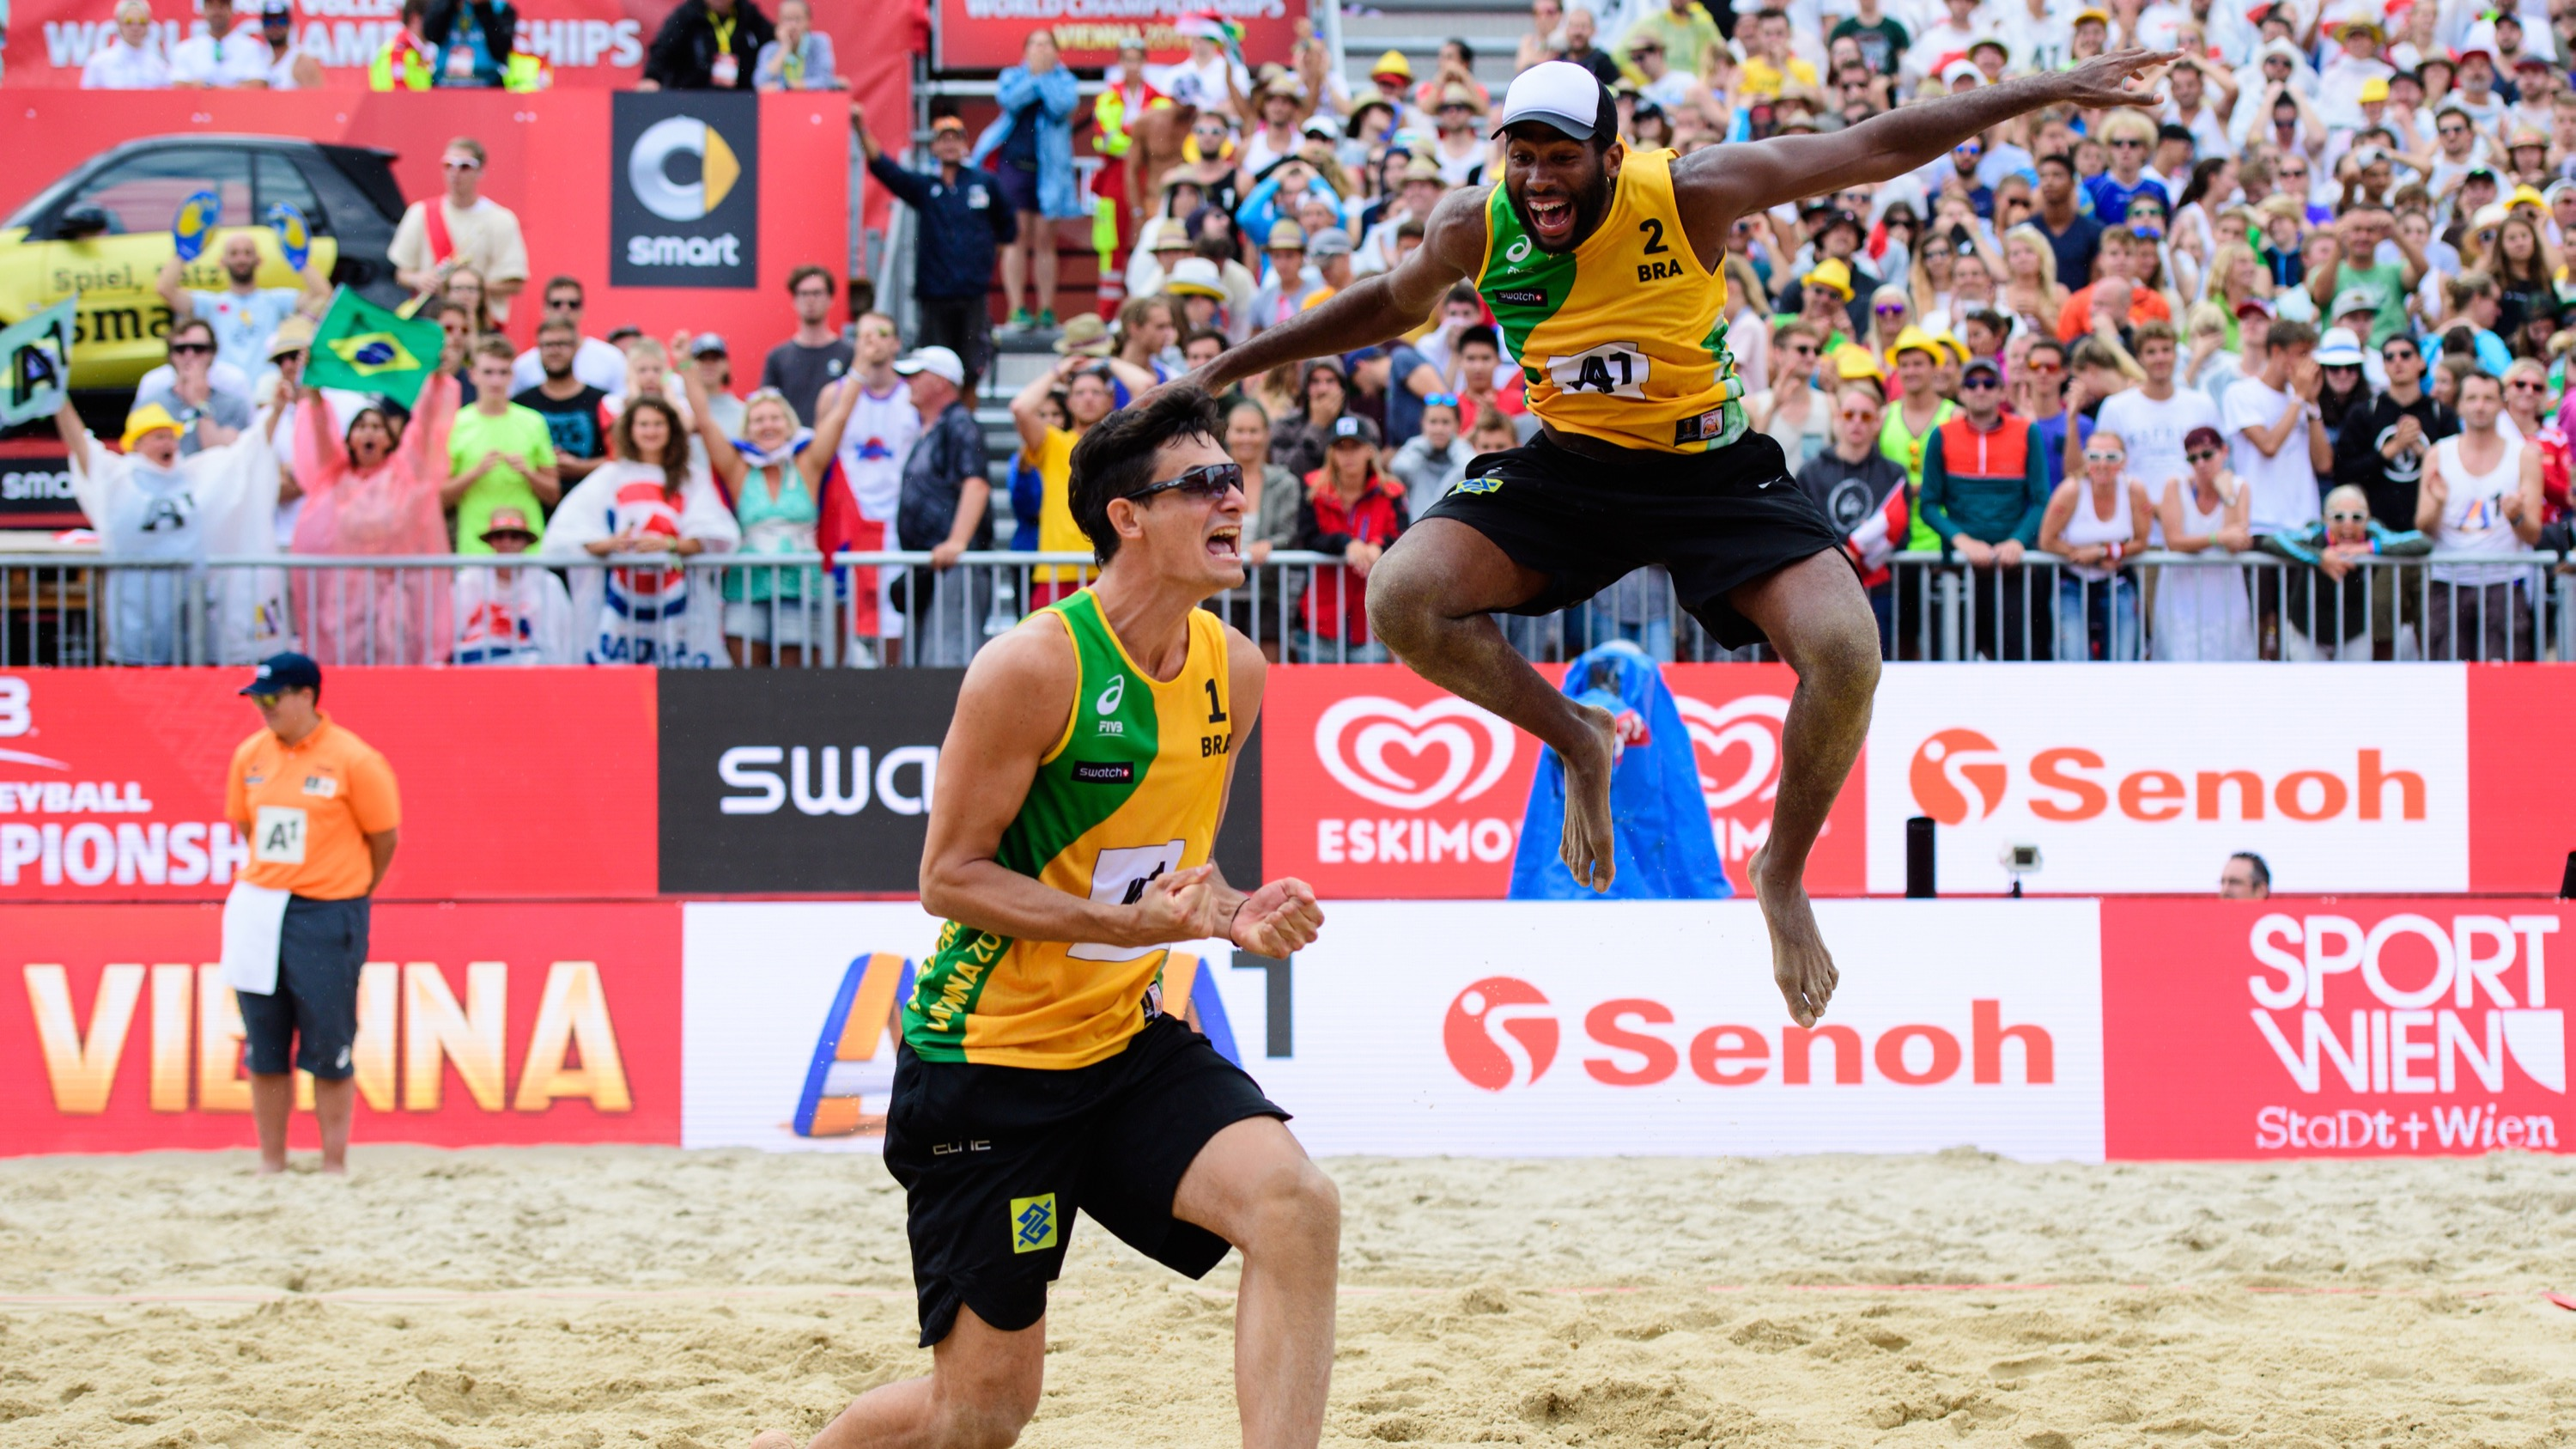 Andre Loyola Evandro Goncalves fivb world championships 2017